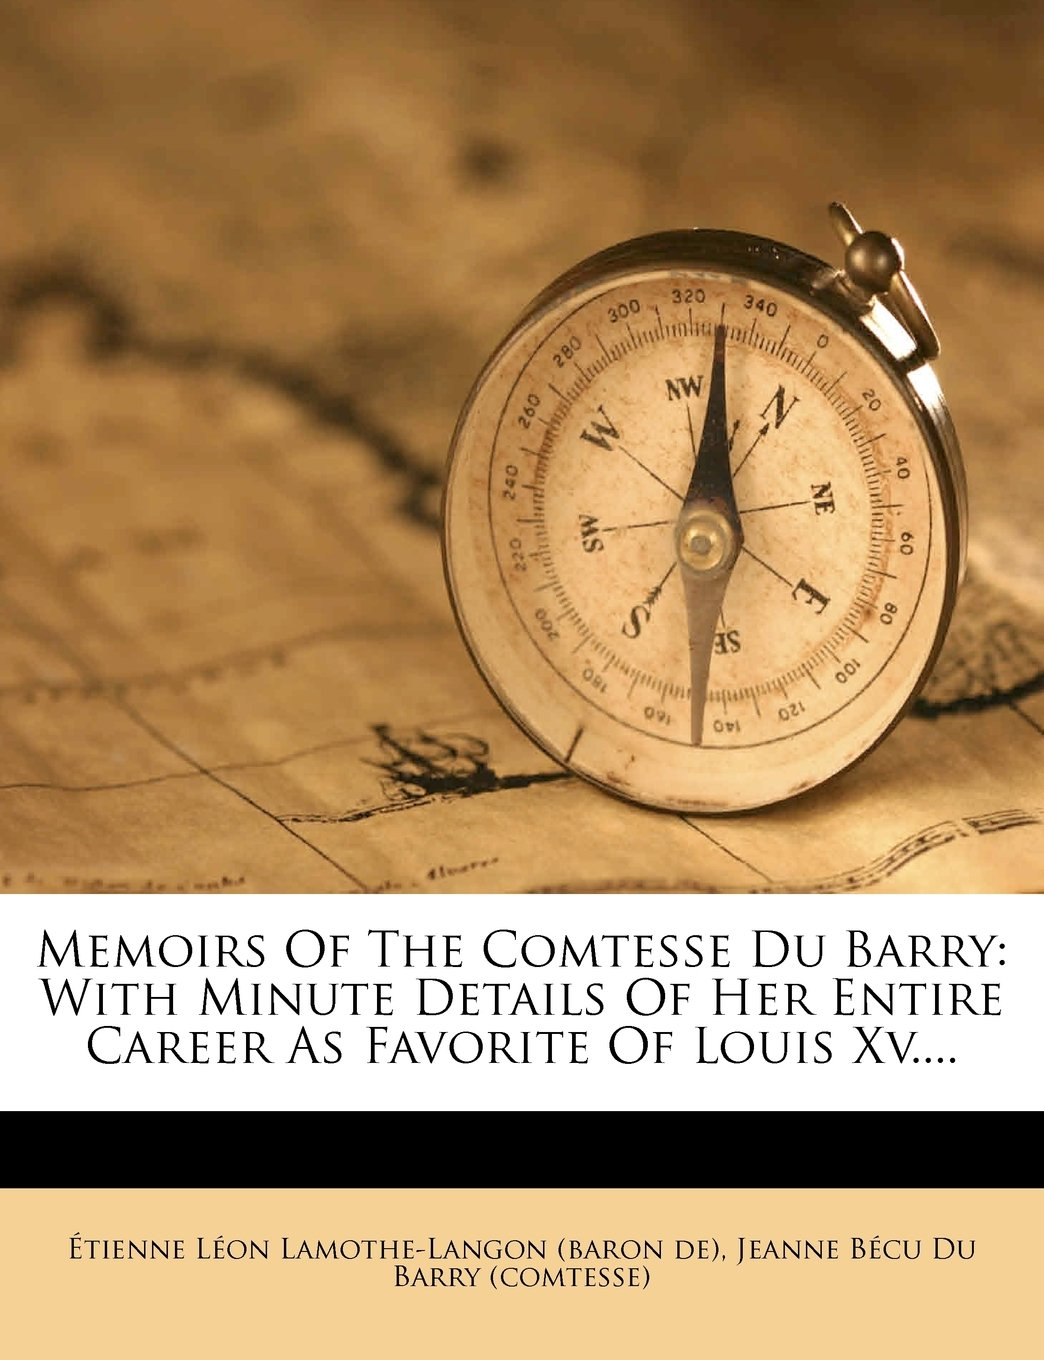 Read Online Memoirs Of The Comtesse Du Barry: With Minute Details Of Her Entire Career As Favorite Of Louis Xv.... PDF